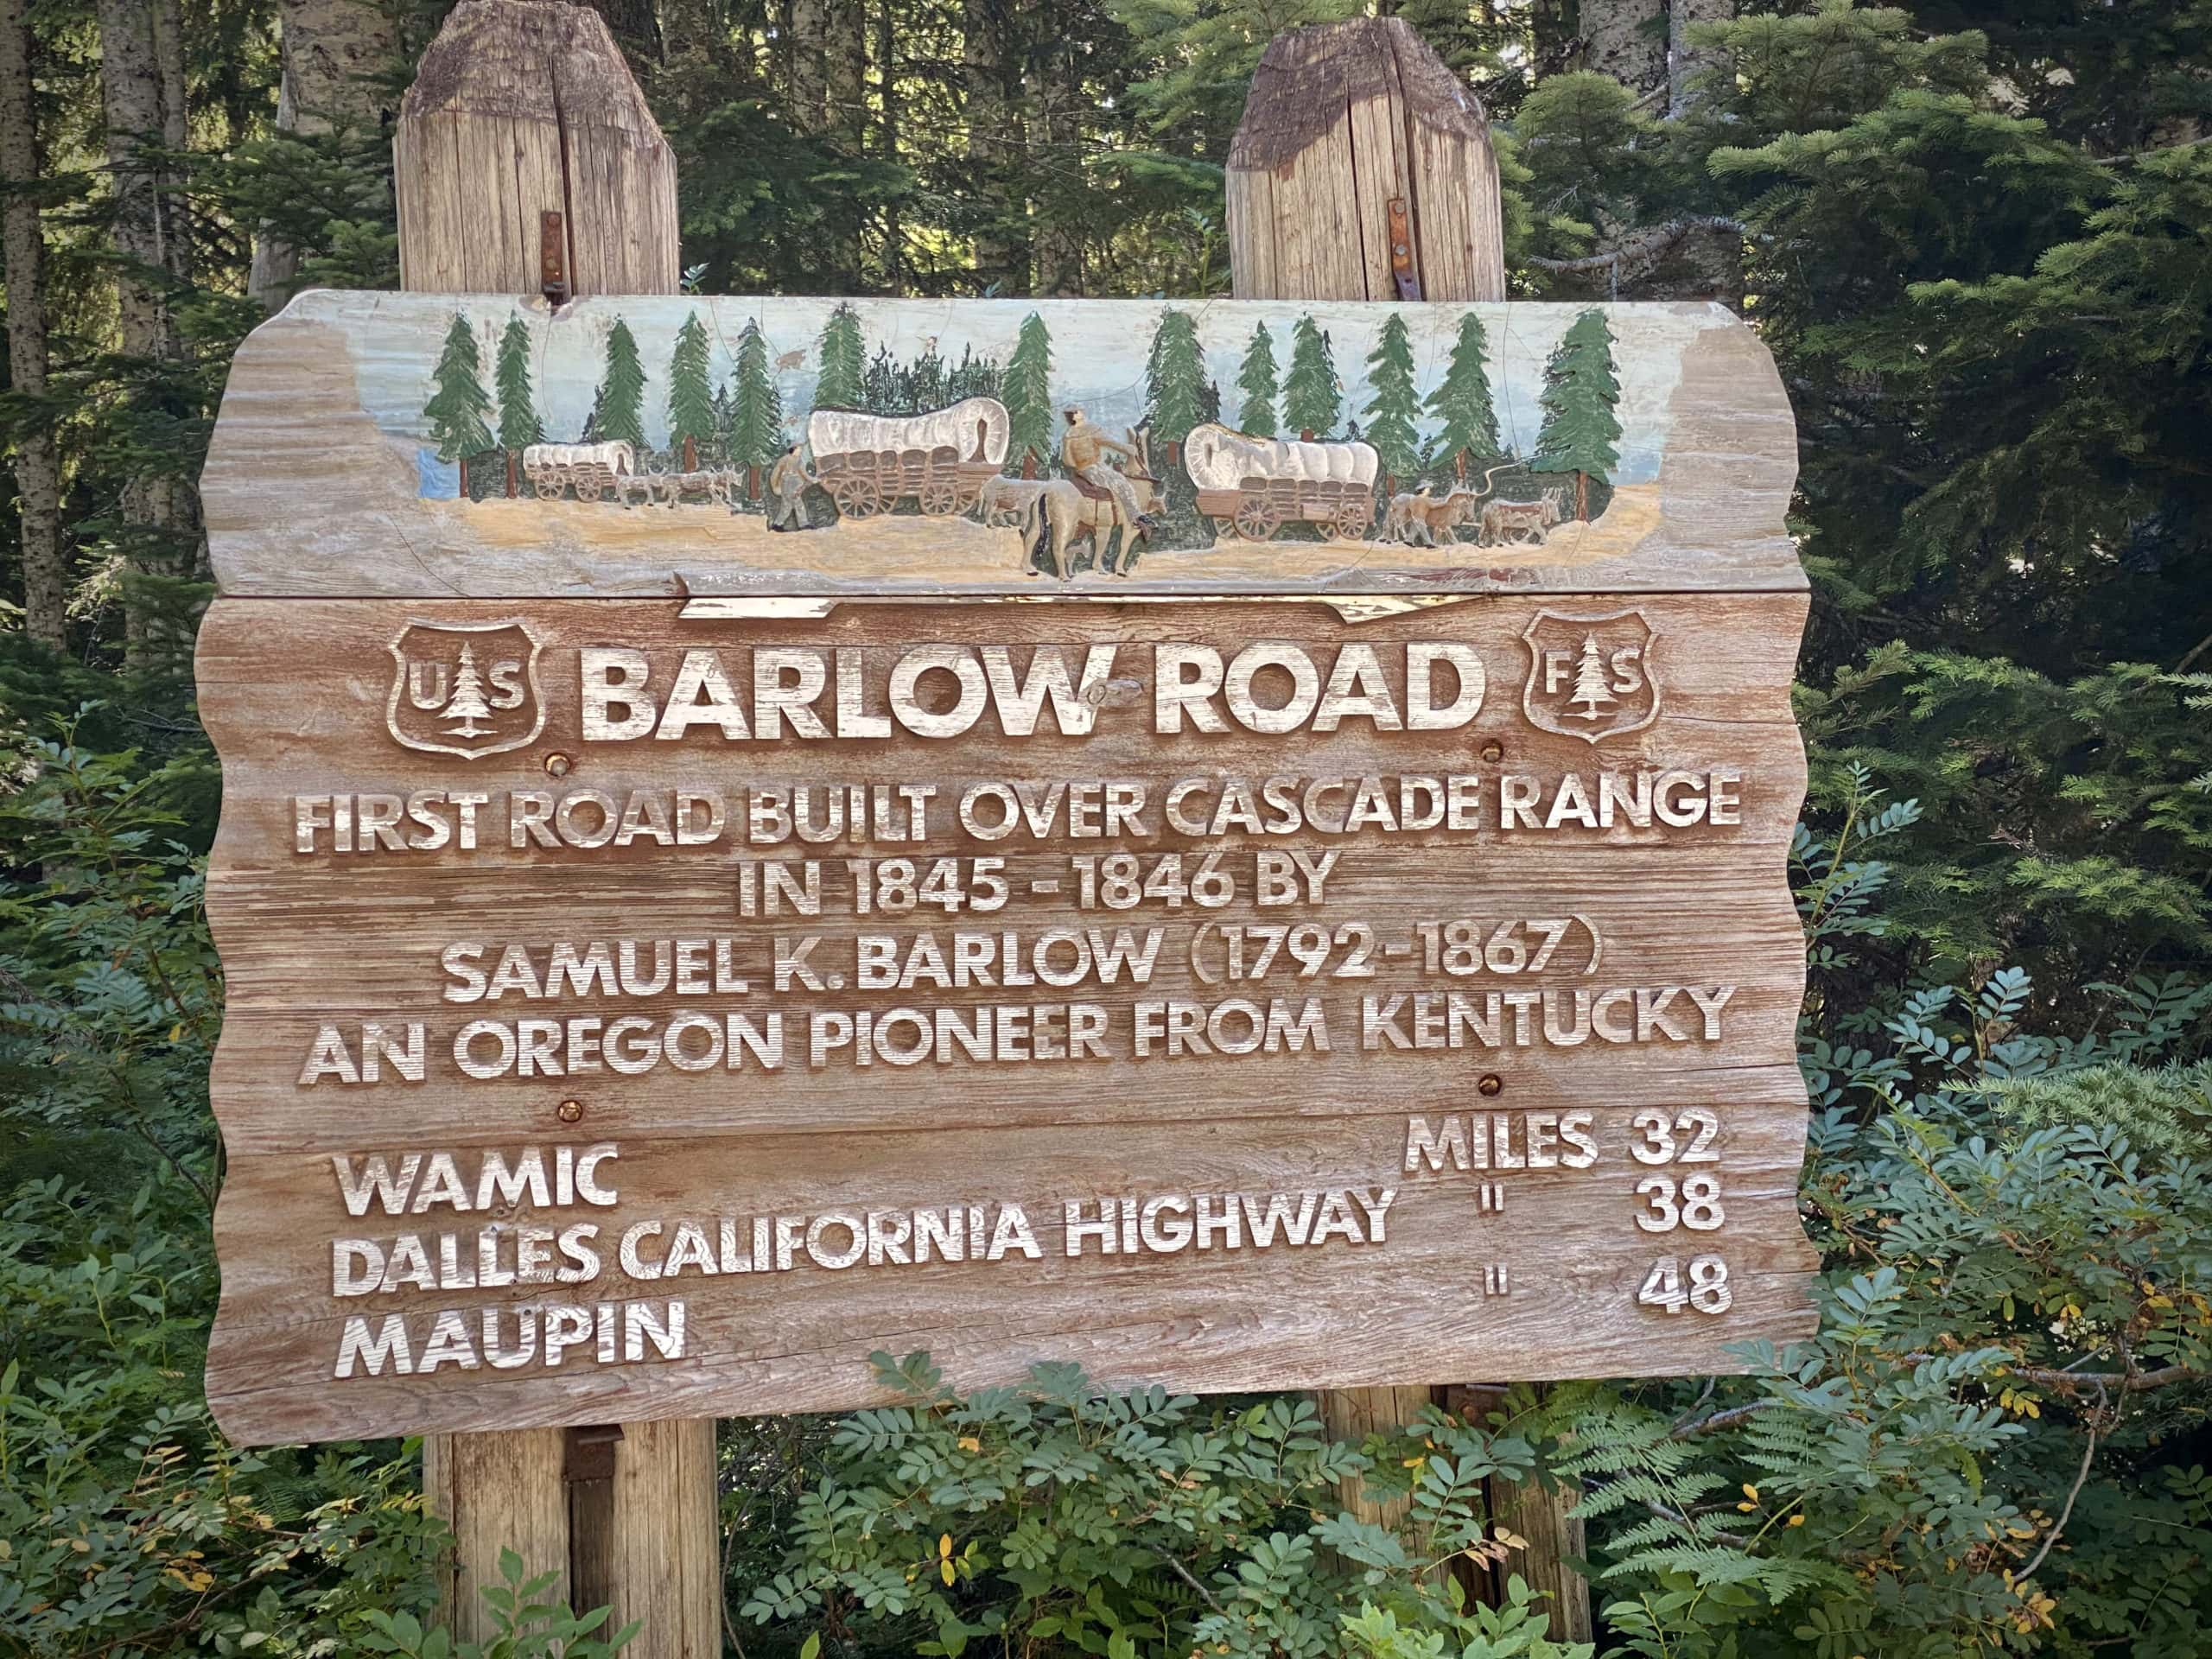 Barlow Road historical sign near Highway 35 and Mt Hood.